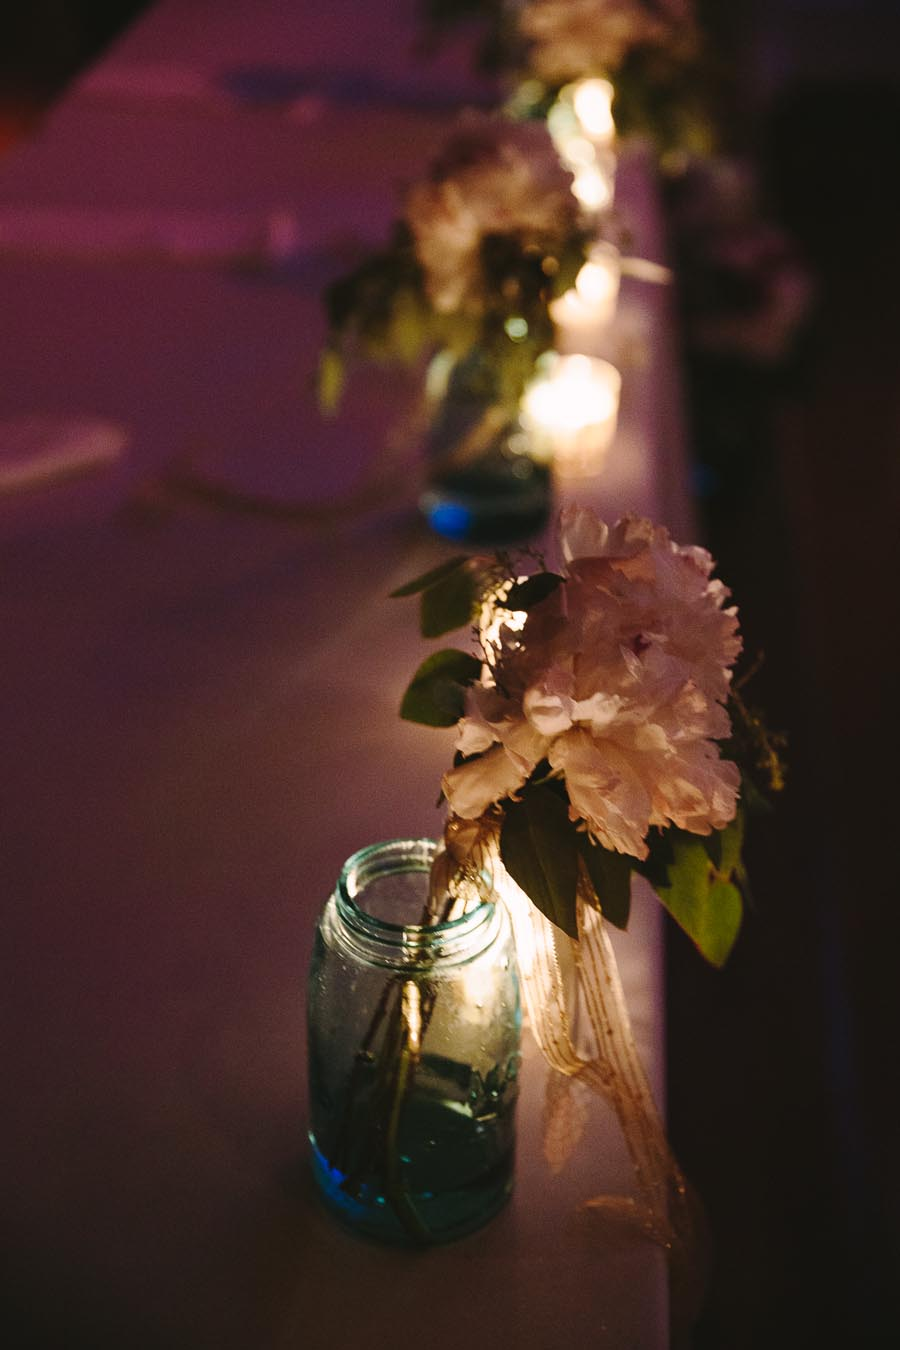 columbia-station-ohio-wedding-photography-whitehall-jenni-ian-168.jpg